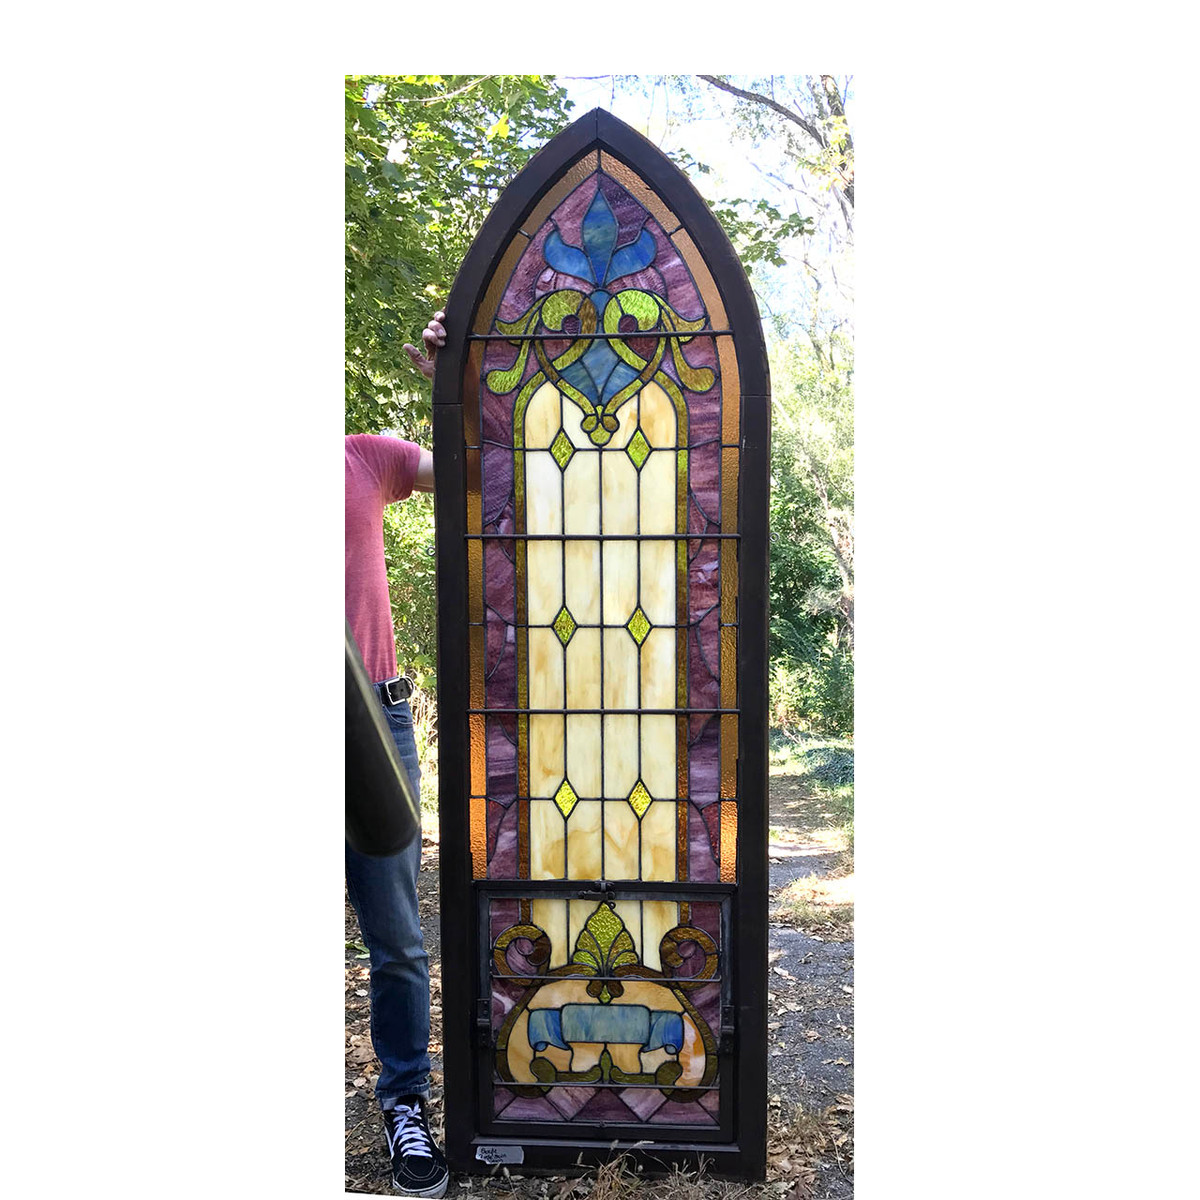 G17069 - Antique Arched Top Gothic Stained Glass Window